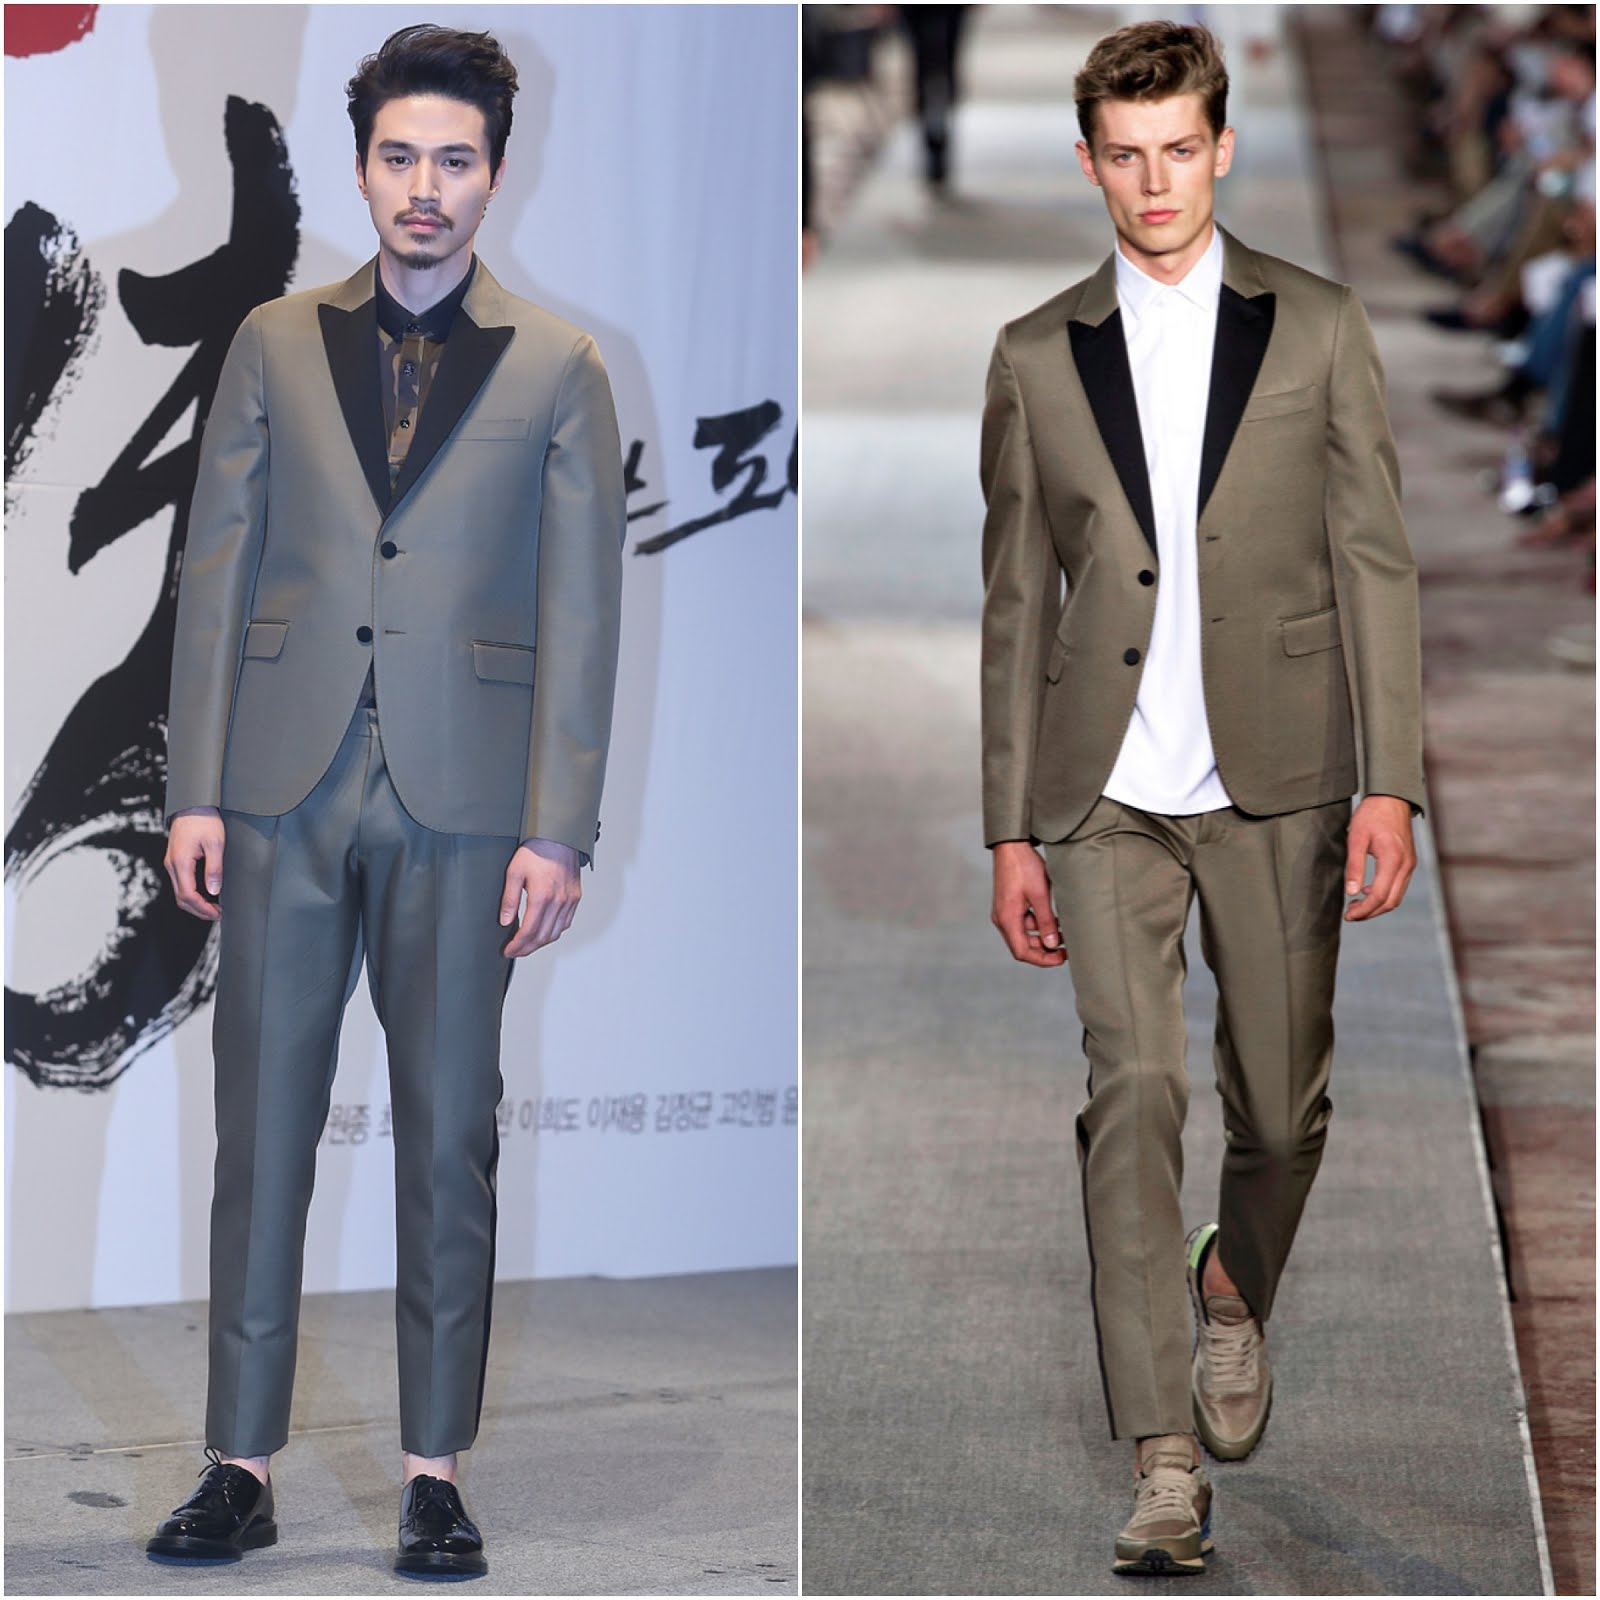 00O00 Menswear Blog Lee Dong Wook 李棟旭 in Valentino Menswear -